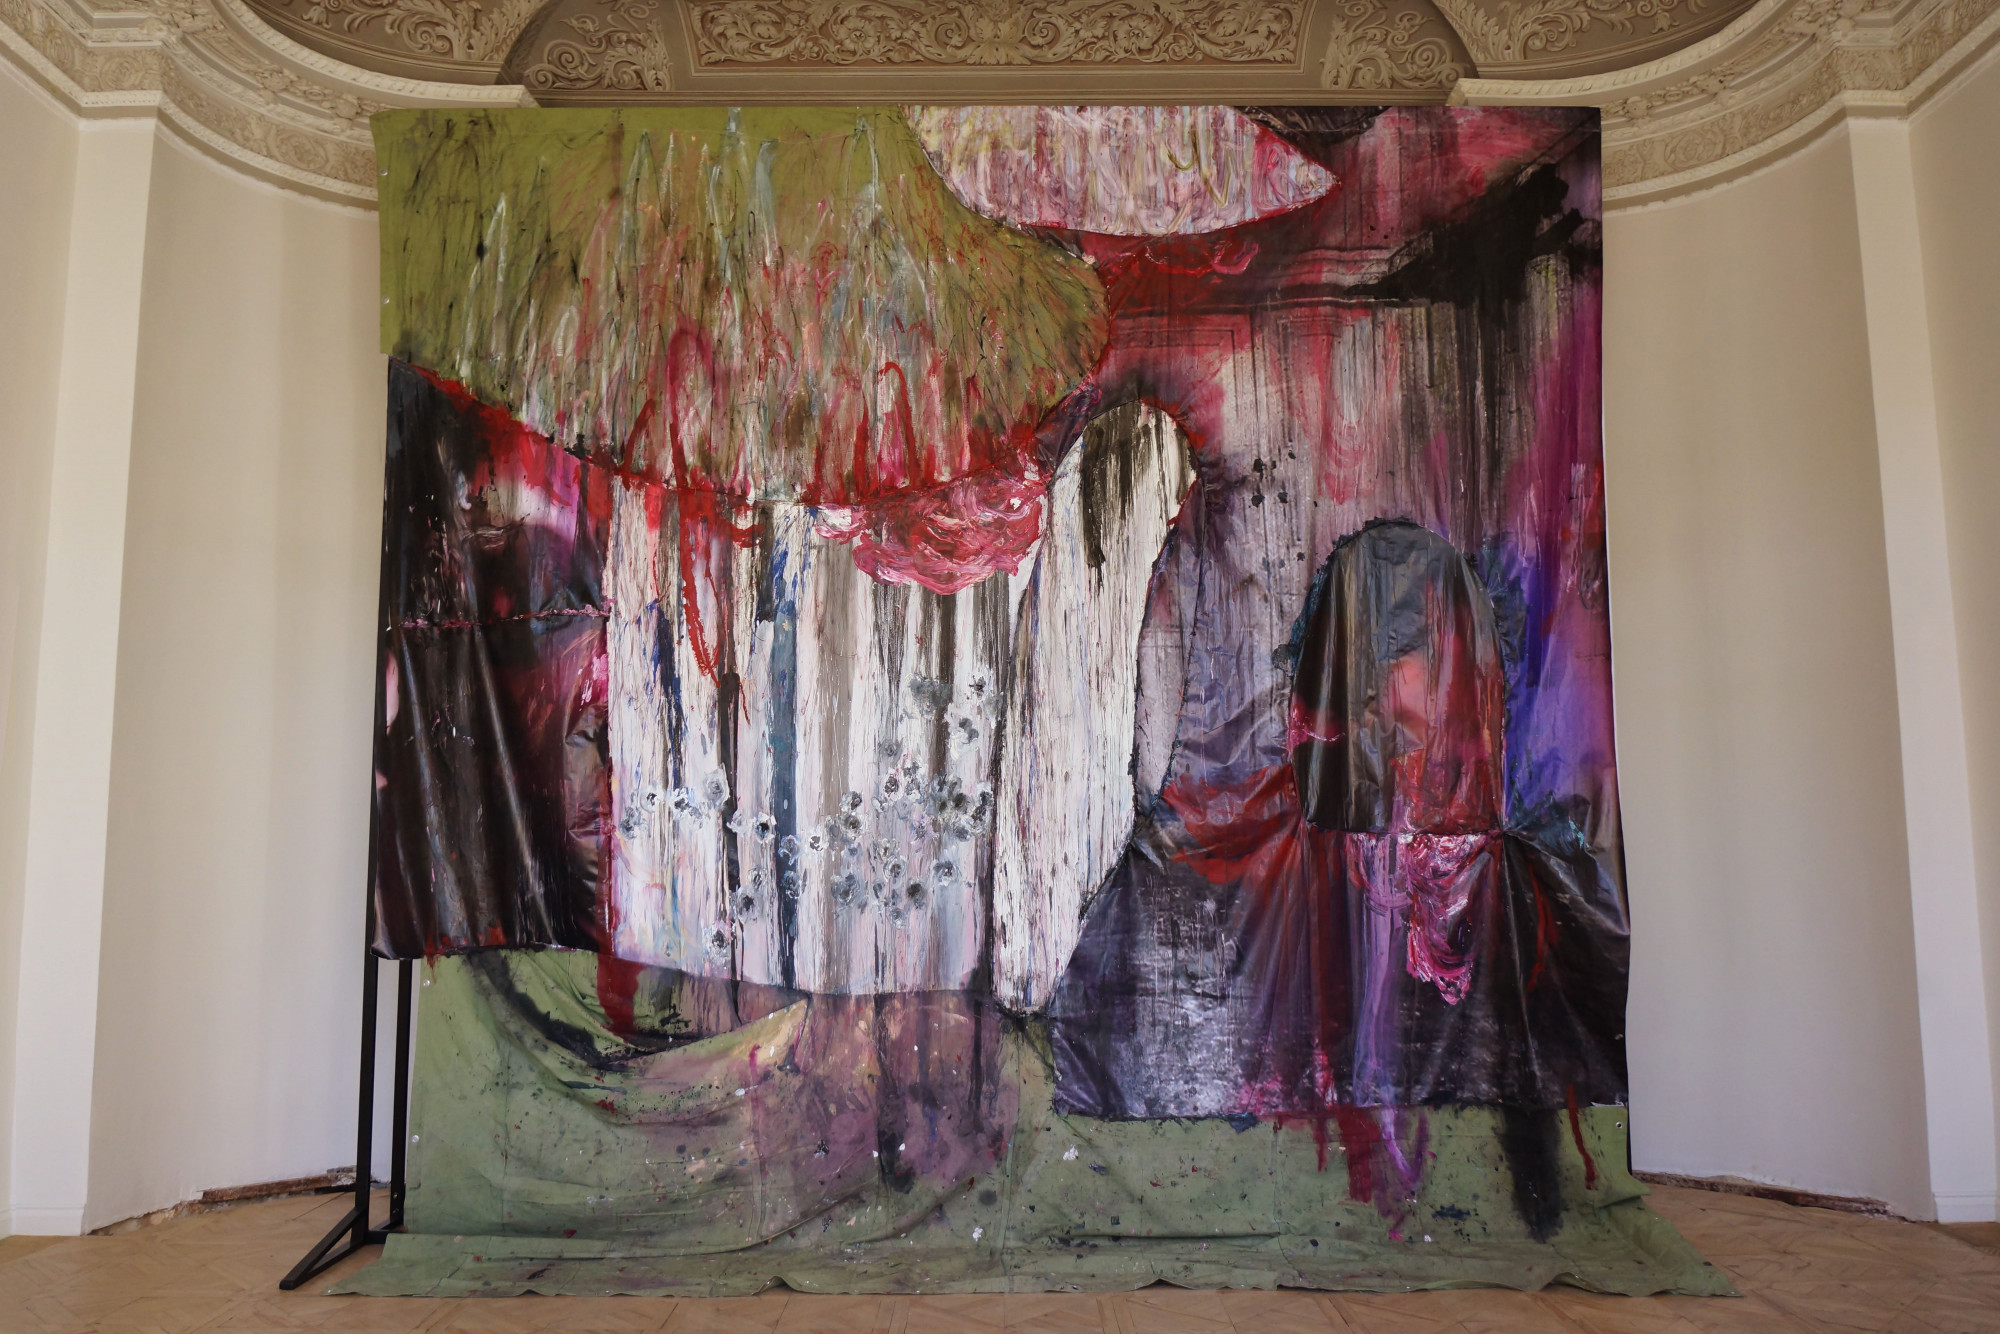 Ipatyev's Room, 2019. From the personal show Red Garden at the Szena gallery, Moscow